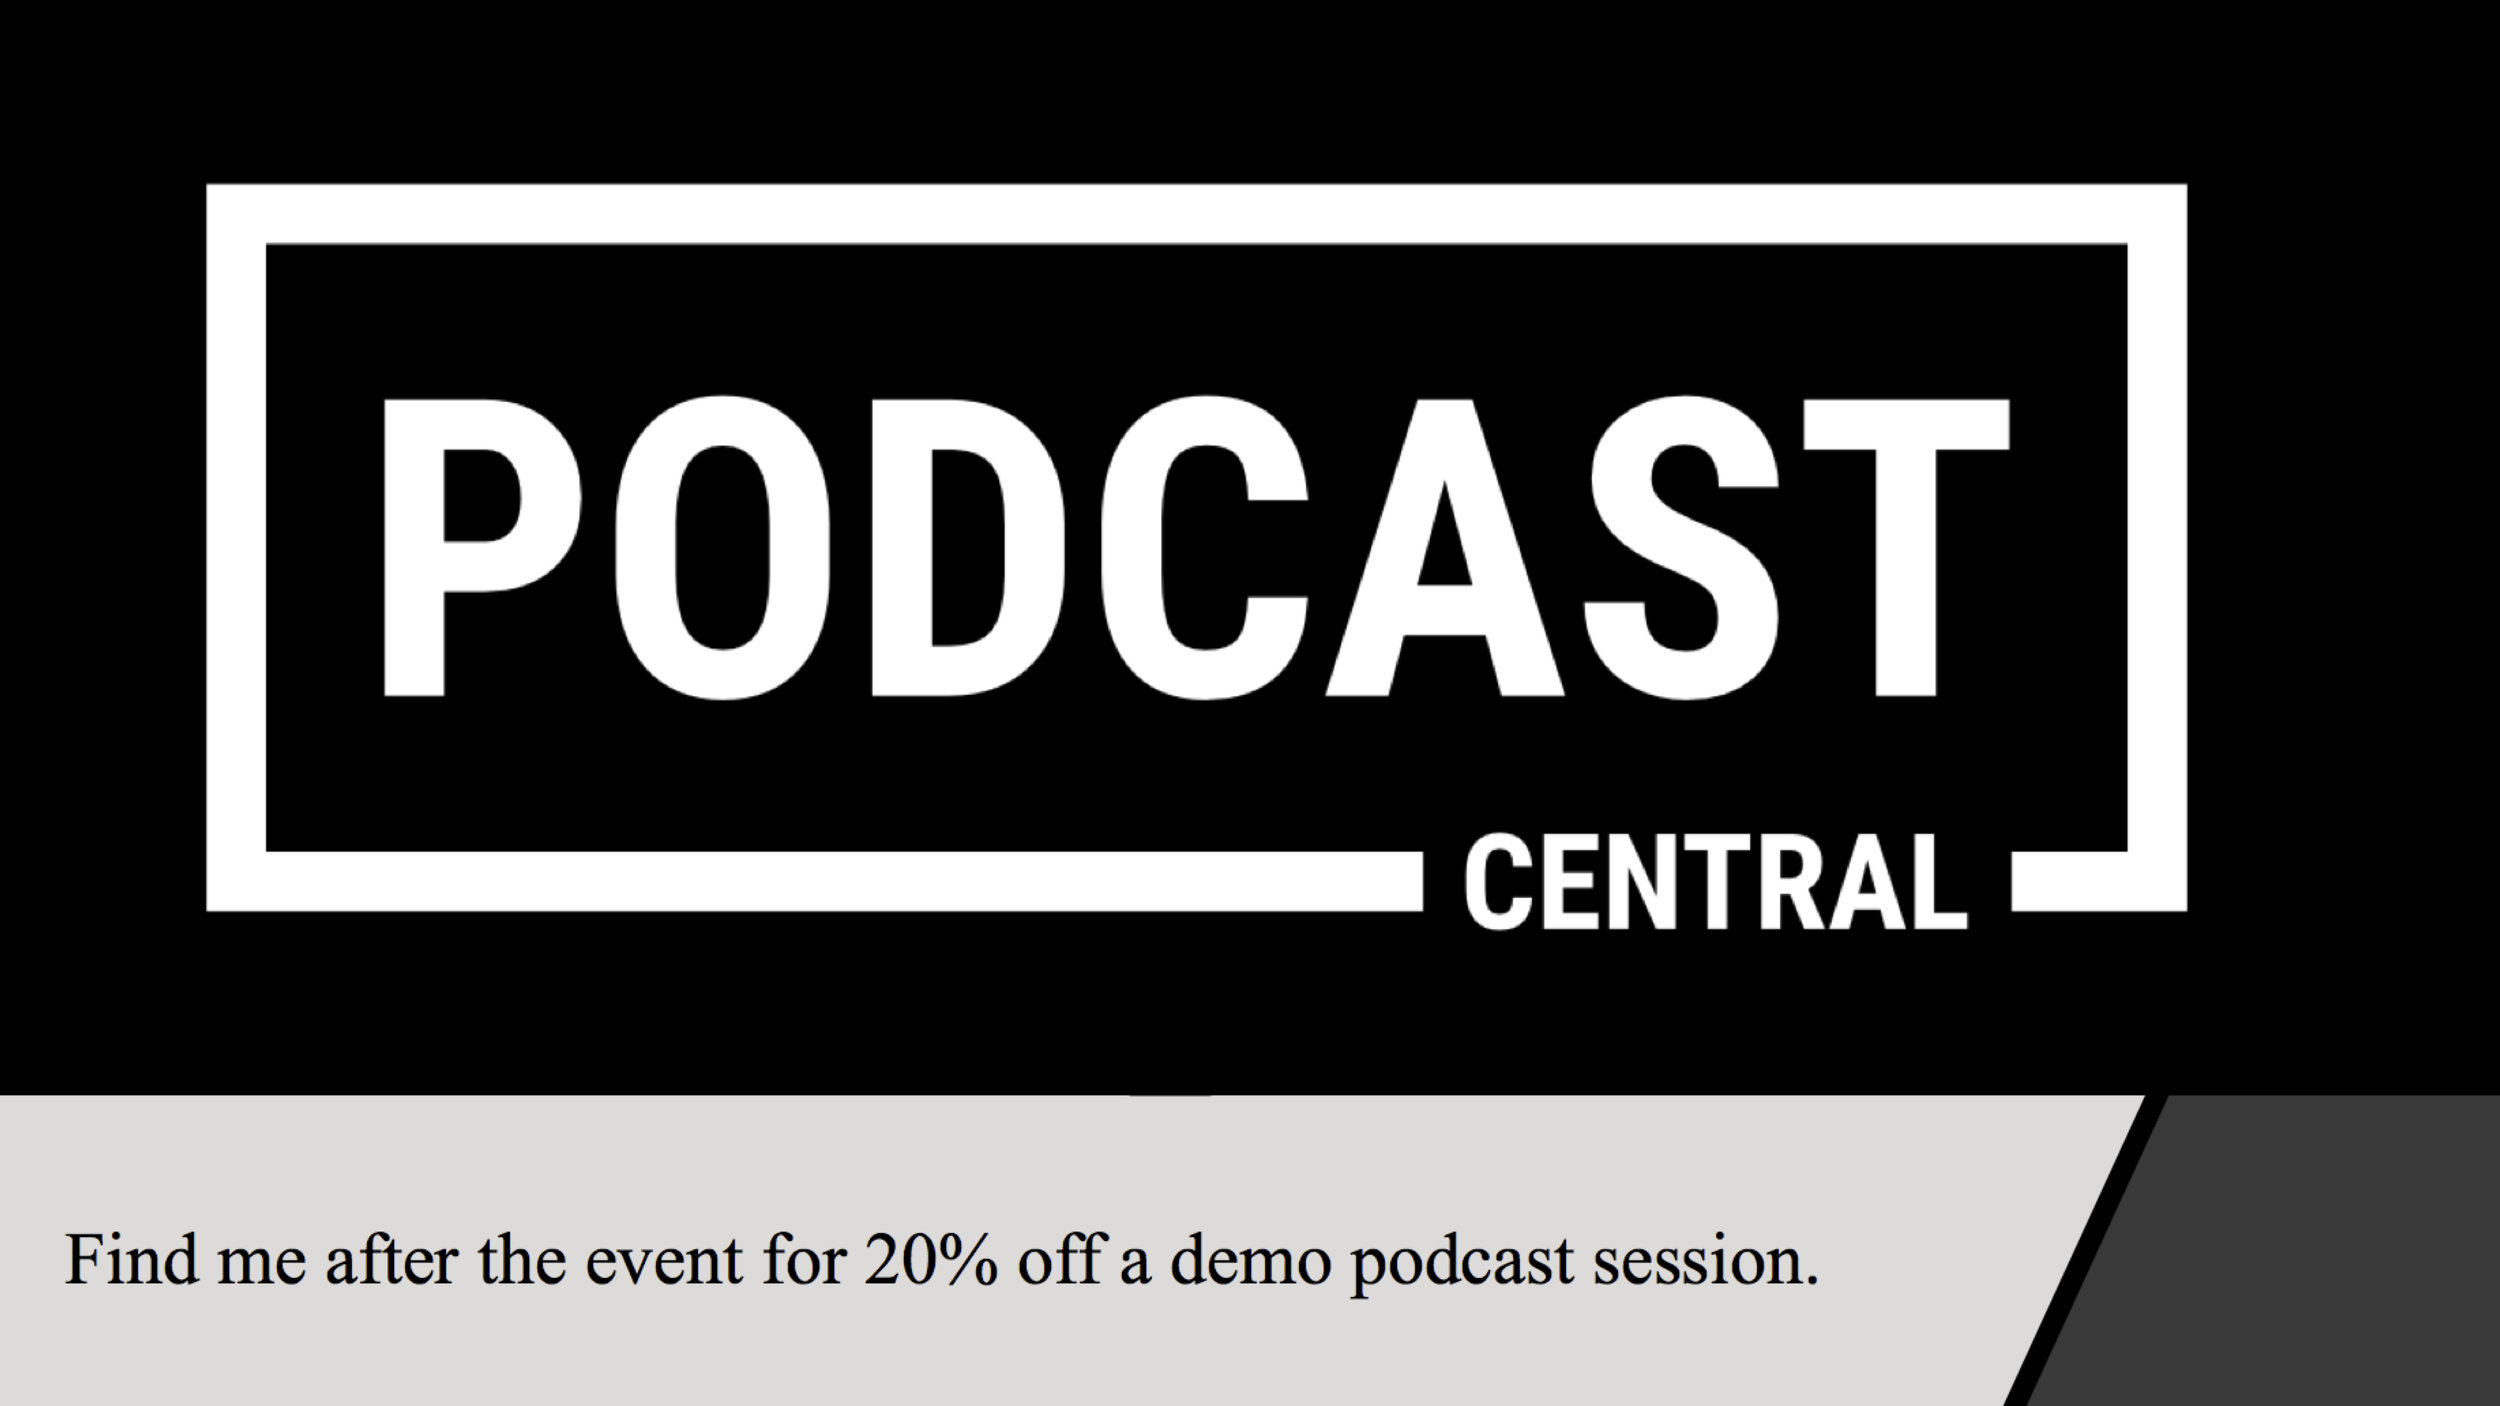 Podcast Central_Pitch Deck_12062018_10.jpg